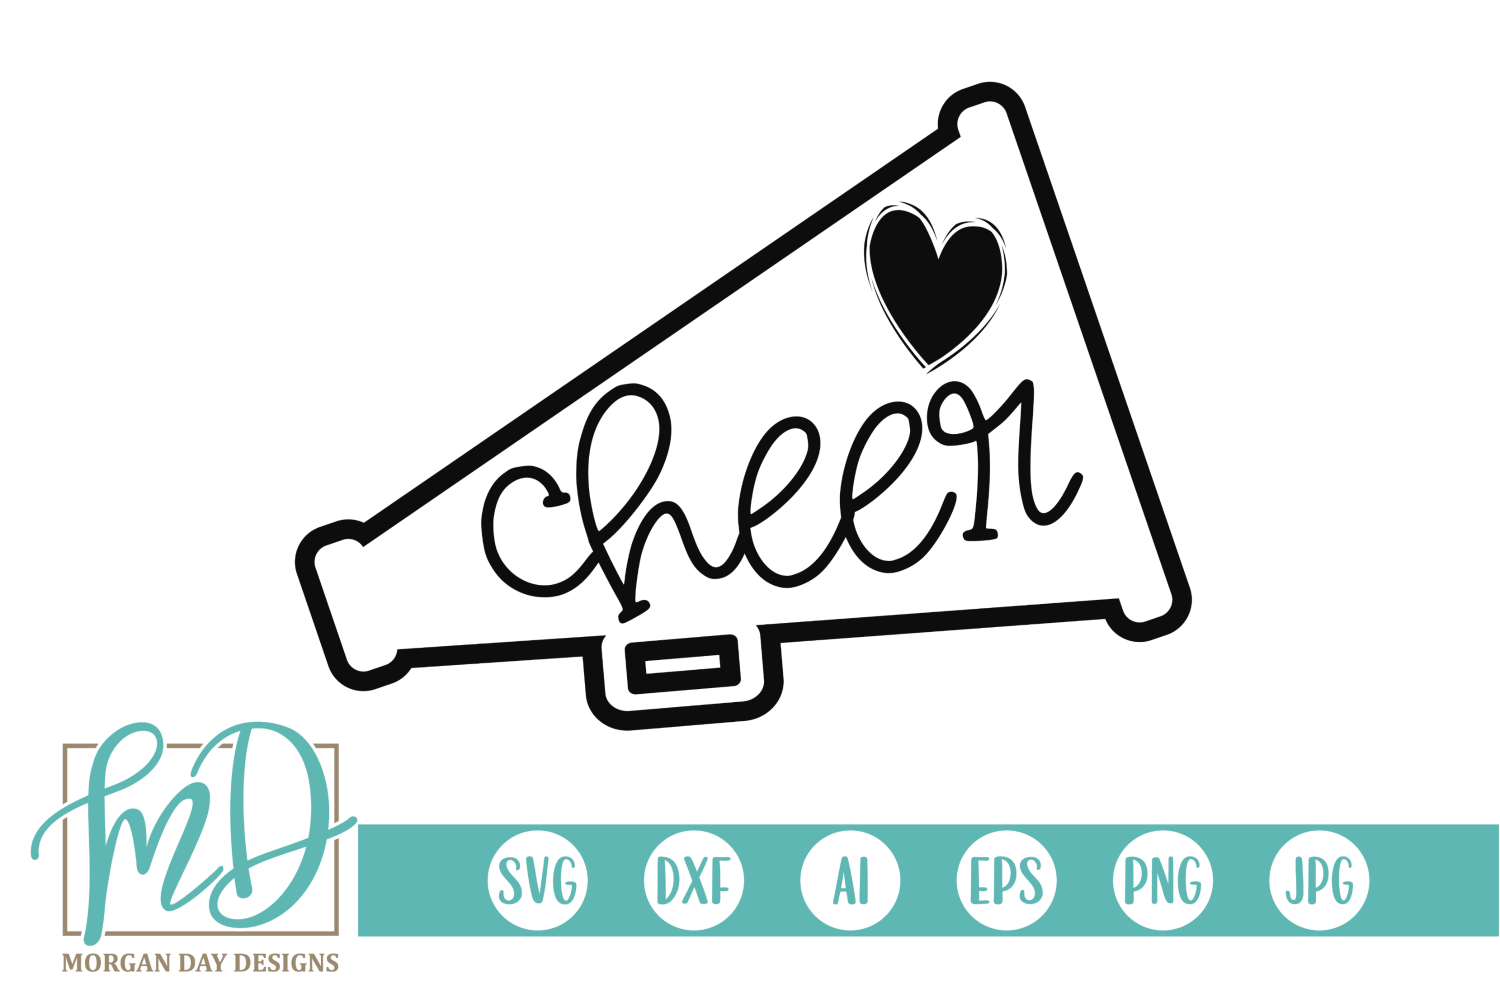 Download Free Cheer Megaphone Graphic By Morgan Day Designs Creative Fabrica for Cricut Explore, Silhouette and other cutting machines.